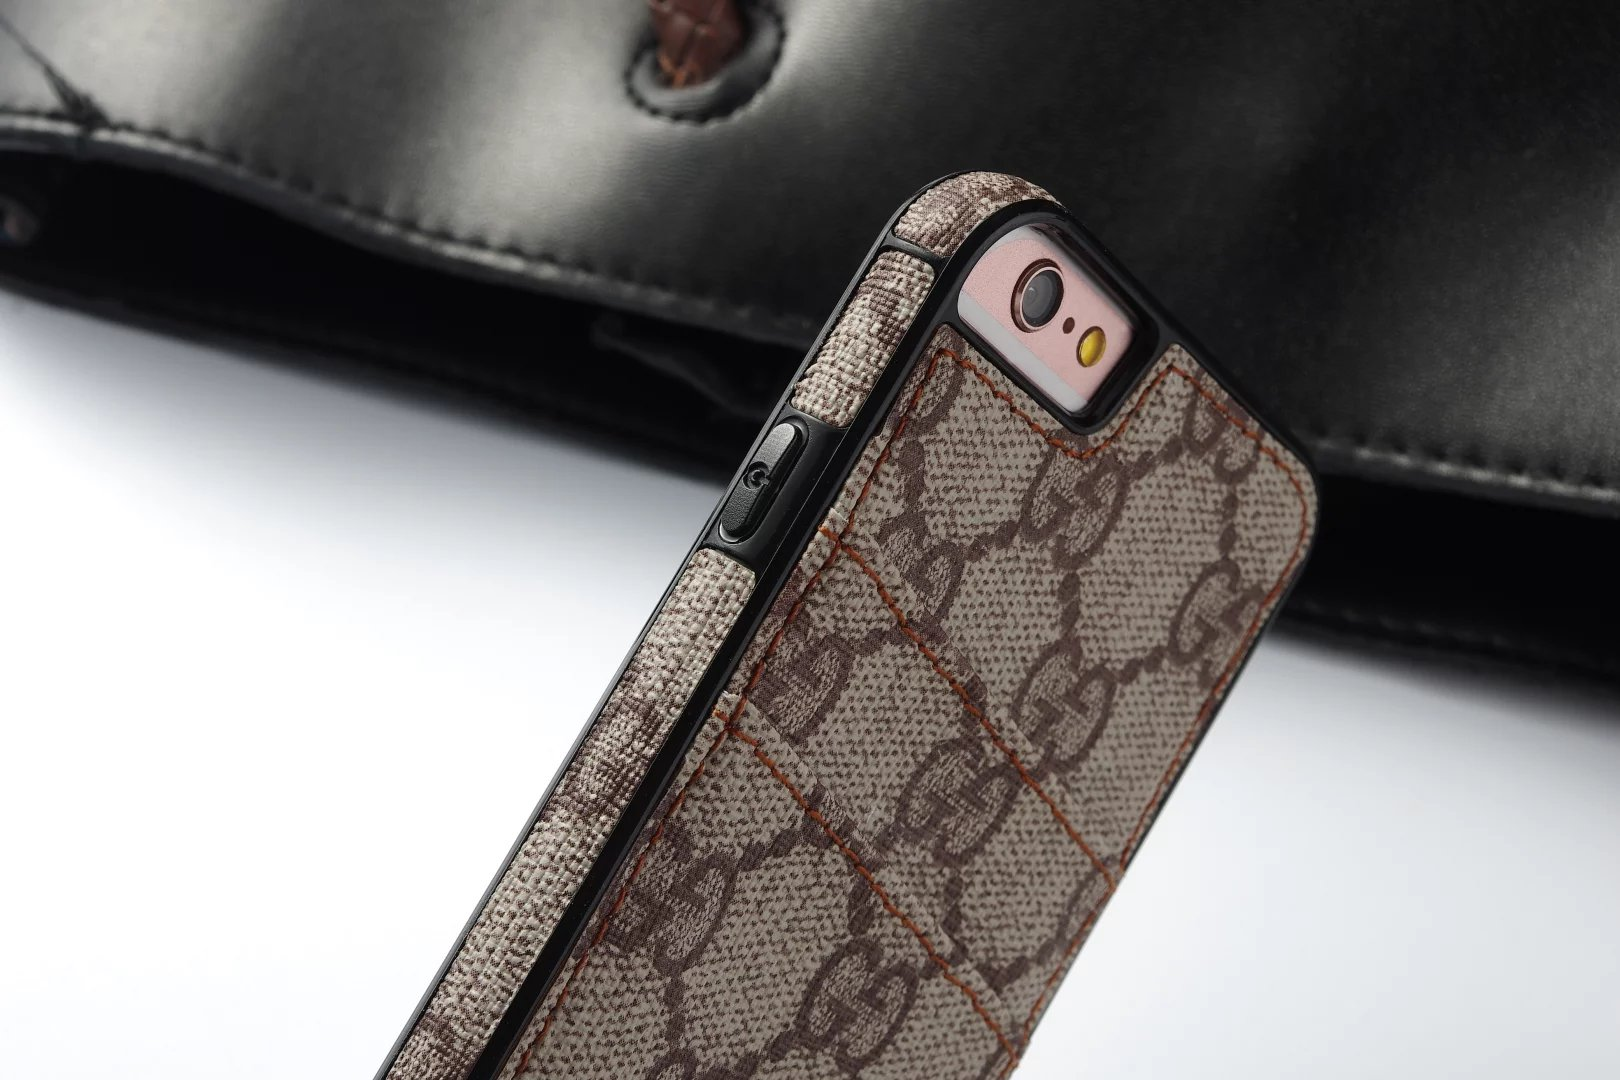 iphone case bedrucken iphone handyhülle mit foto Louis Vuitton iphone6s plus hülle iphone hülle 3gs handyhülle s3 mini 6slbst gestalten handytasche 6s handyhüllen für iphone 6s Plus apple leder ca6s iphone 6s Plus apple iphone 6s Plus hülle leder